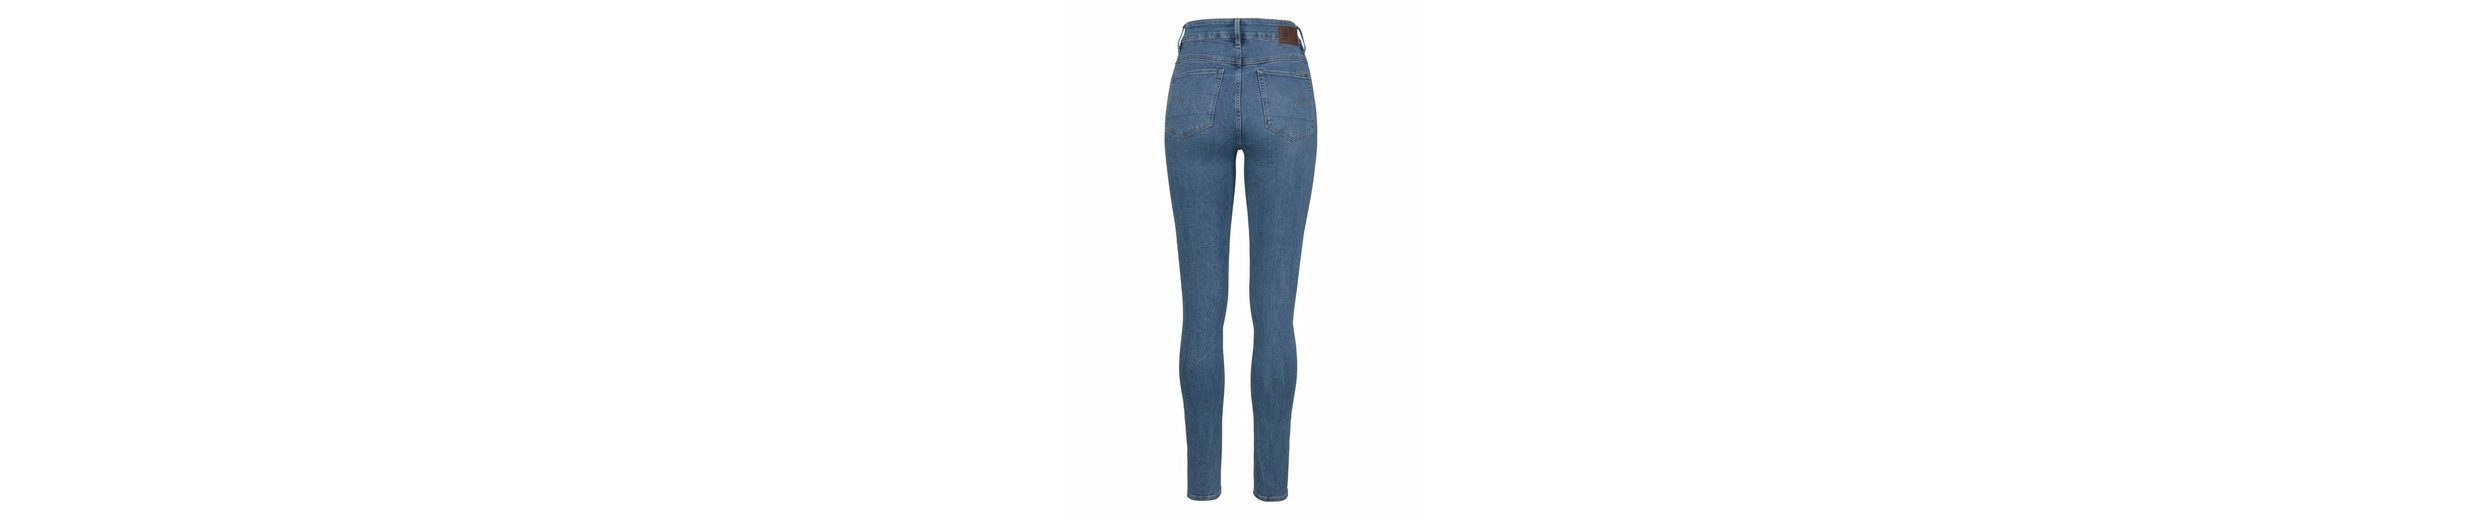 G-Star RAW Skinny-fit-Jeans 3301 Ultra High Skinny, mit Stetch